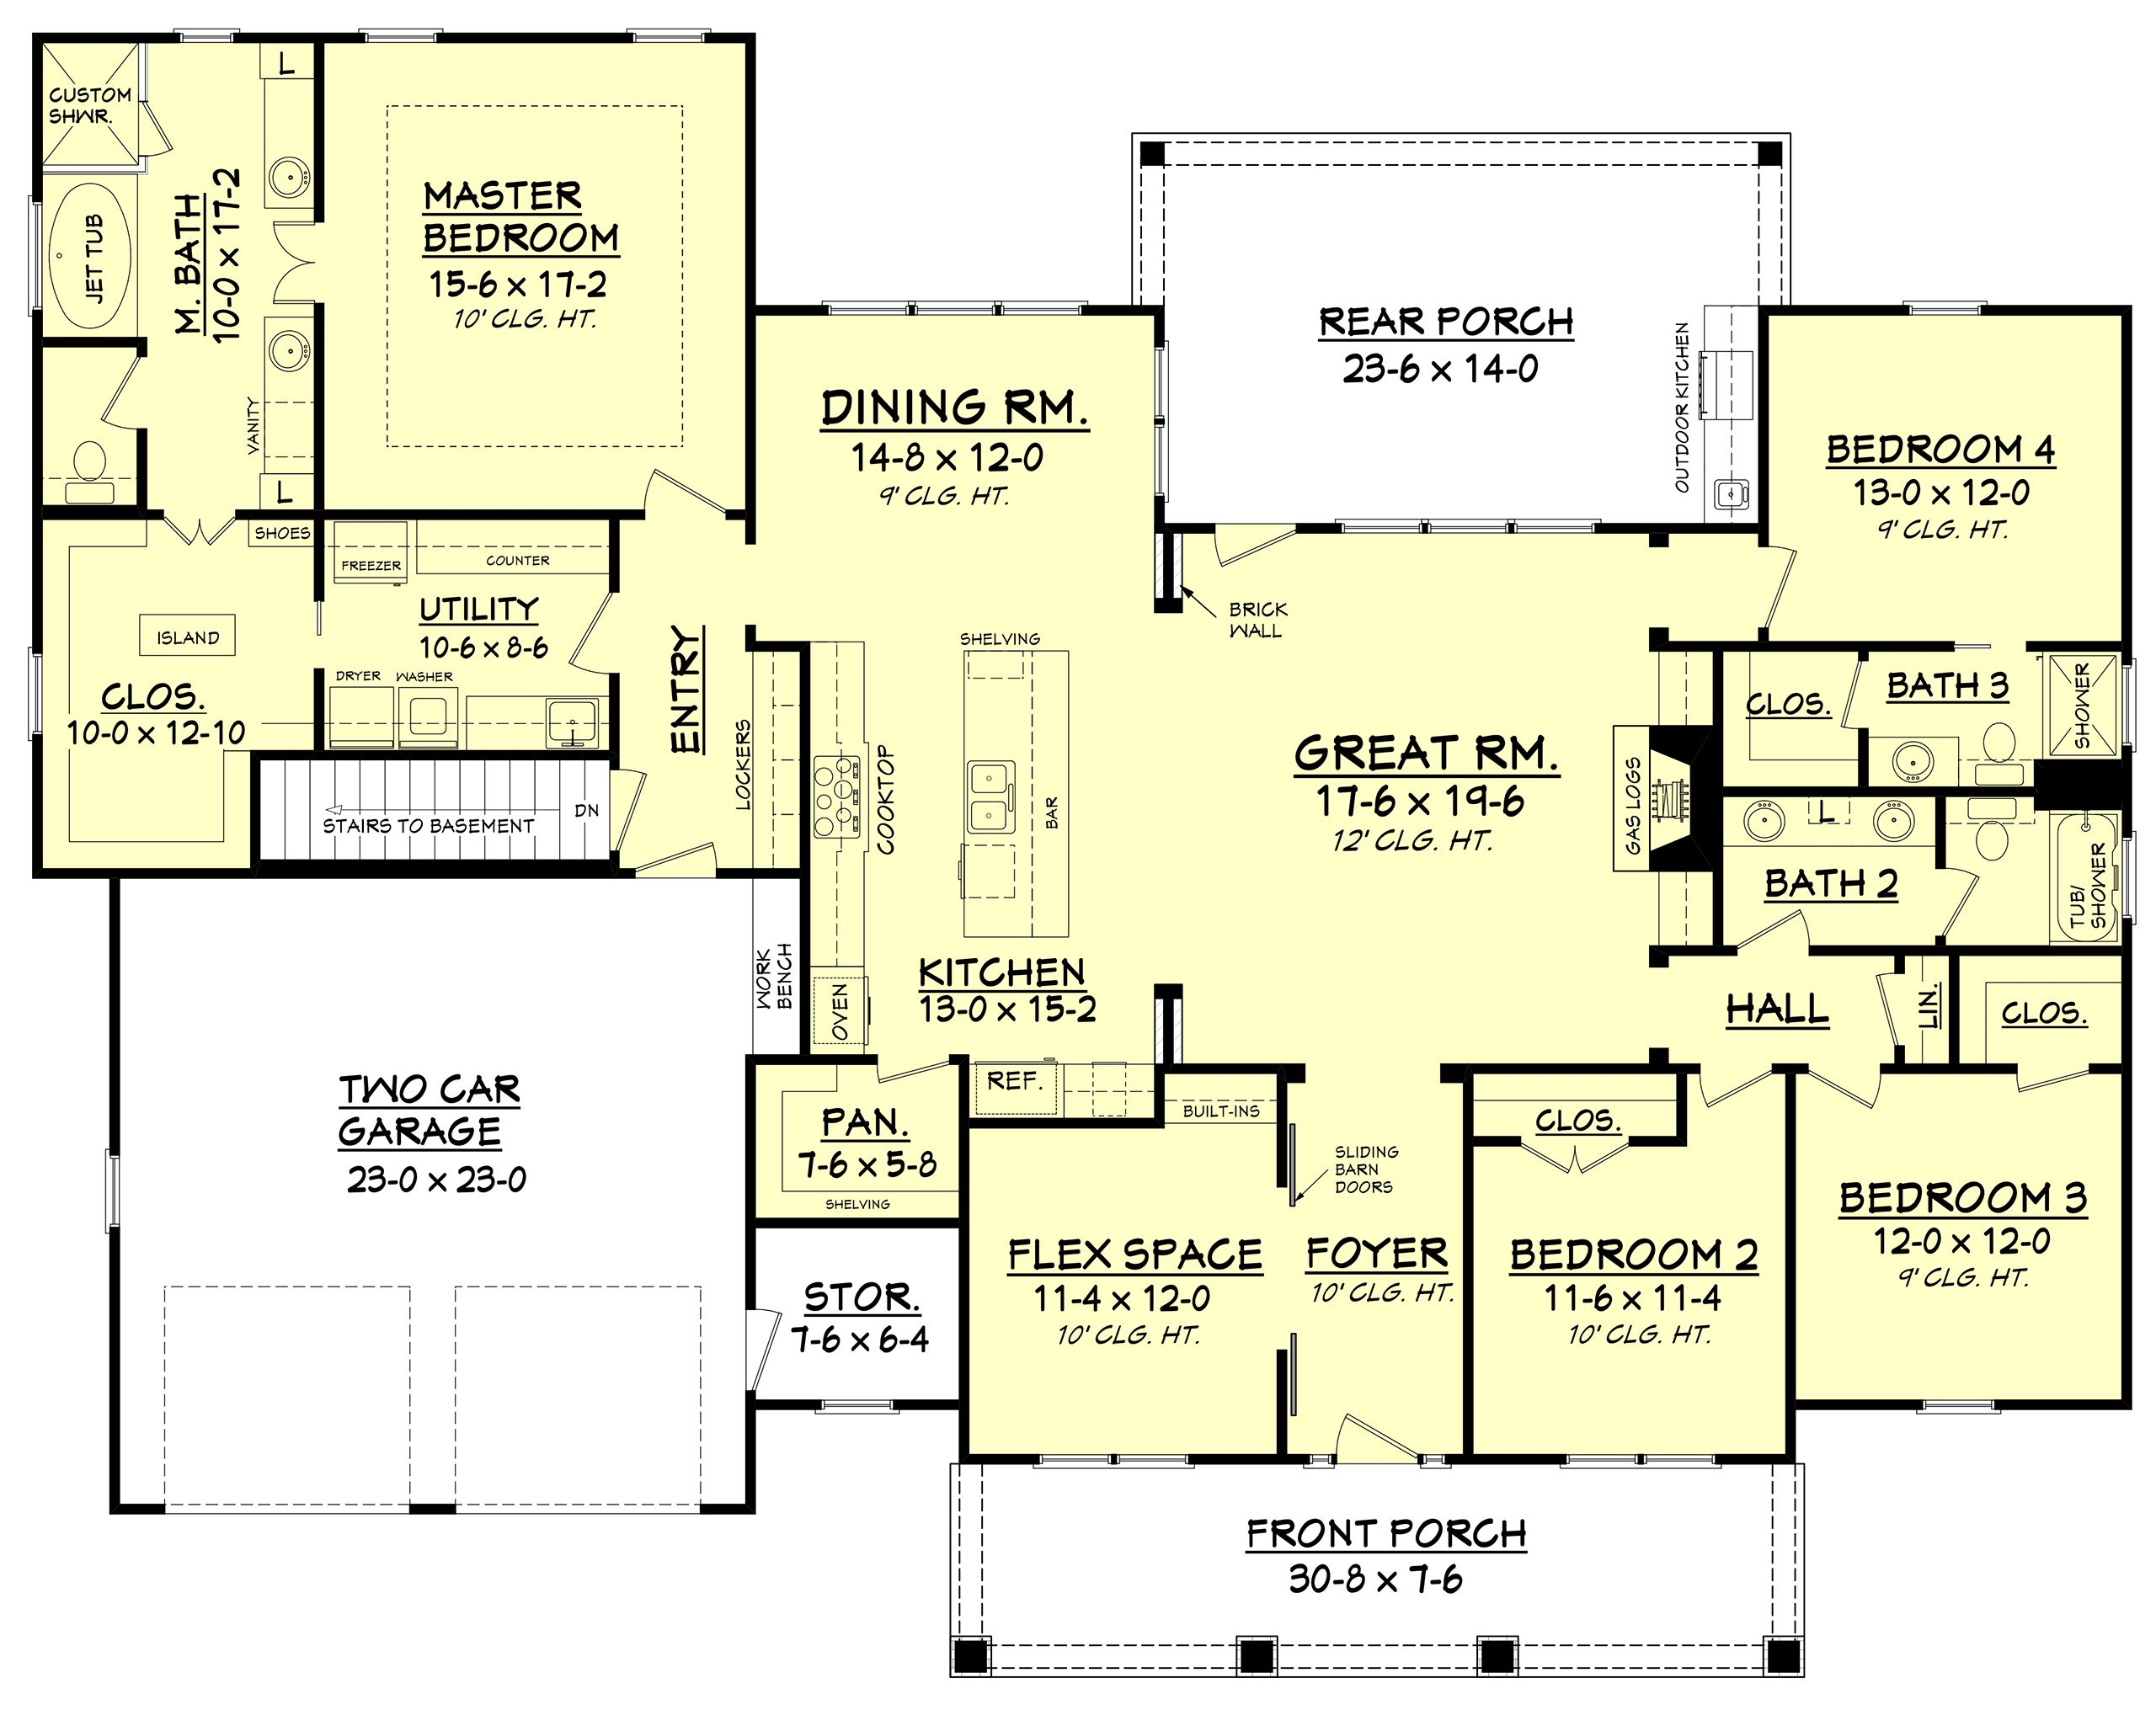 Craftsman Style House Plan 4 Beds 3 Baths 2639 Sq Ft Plan 430 104 Main Floor Plan